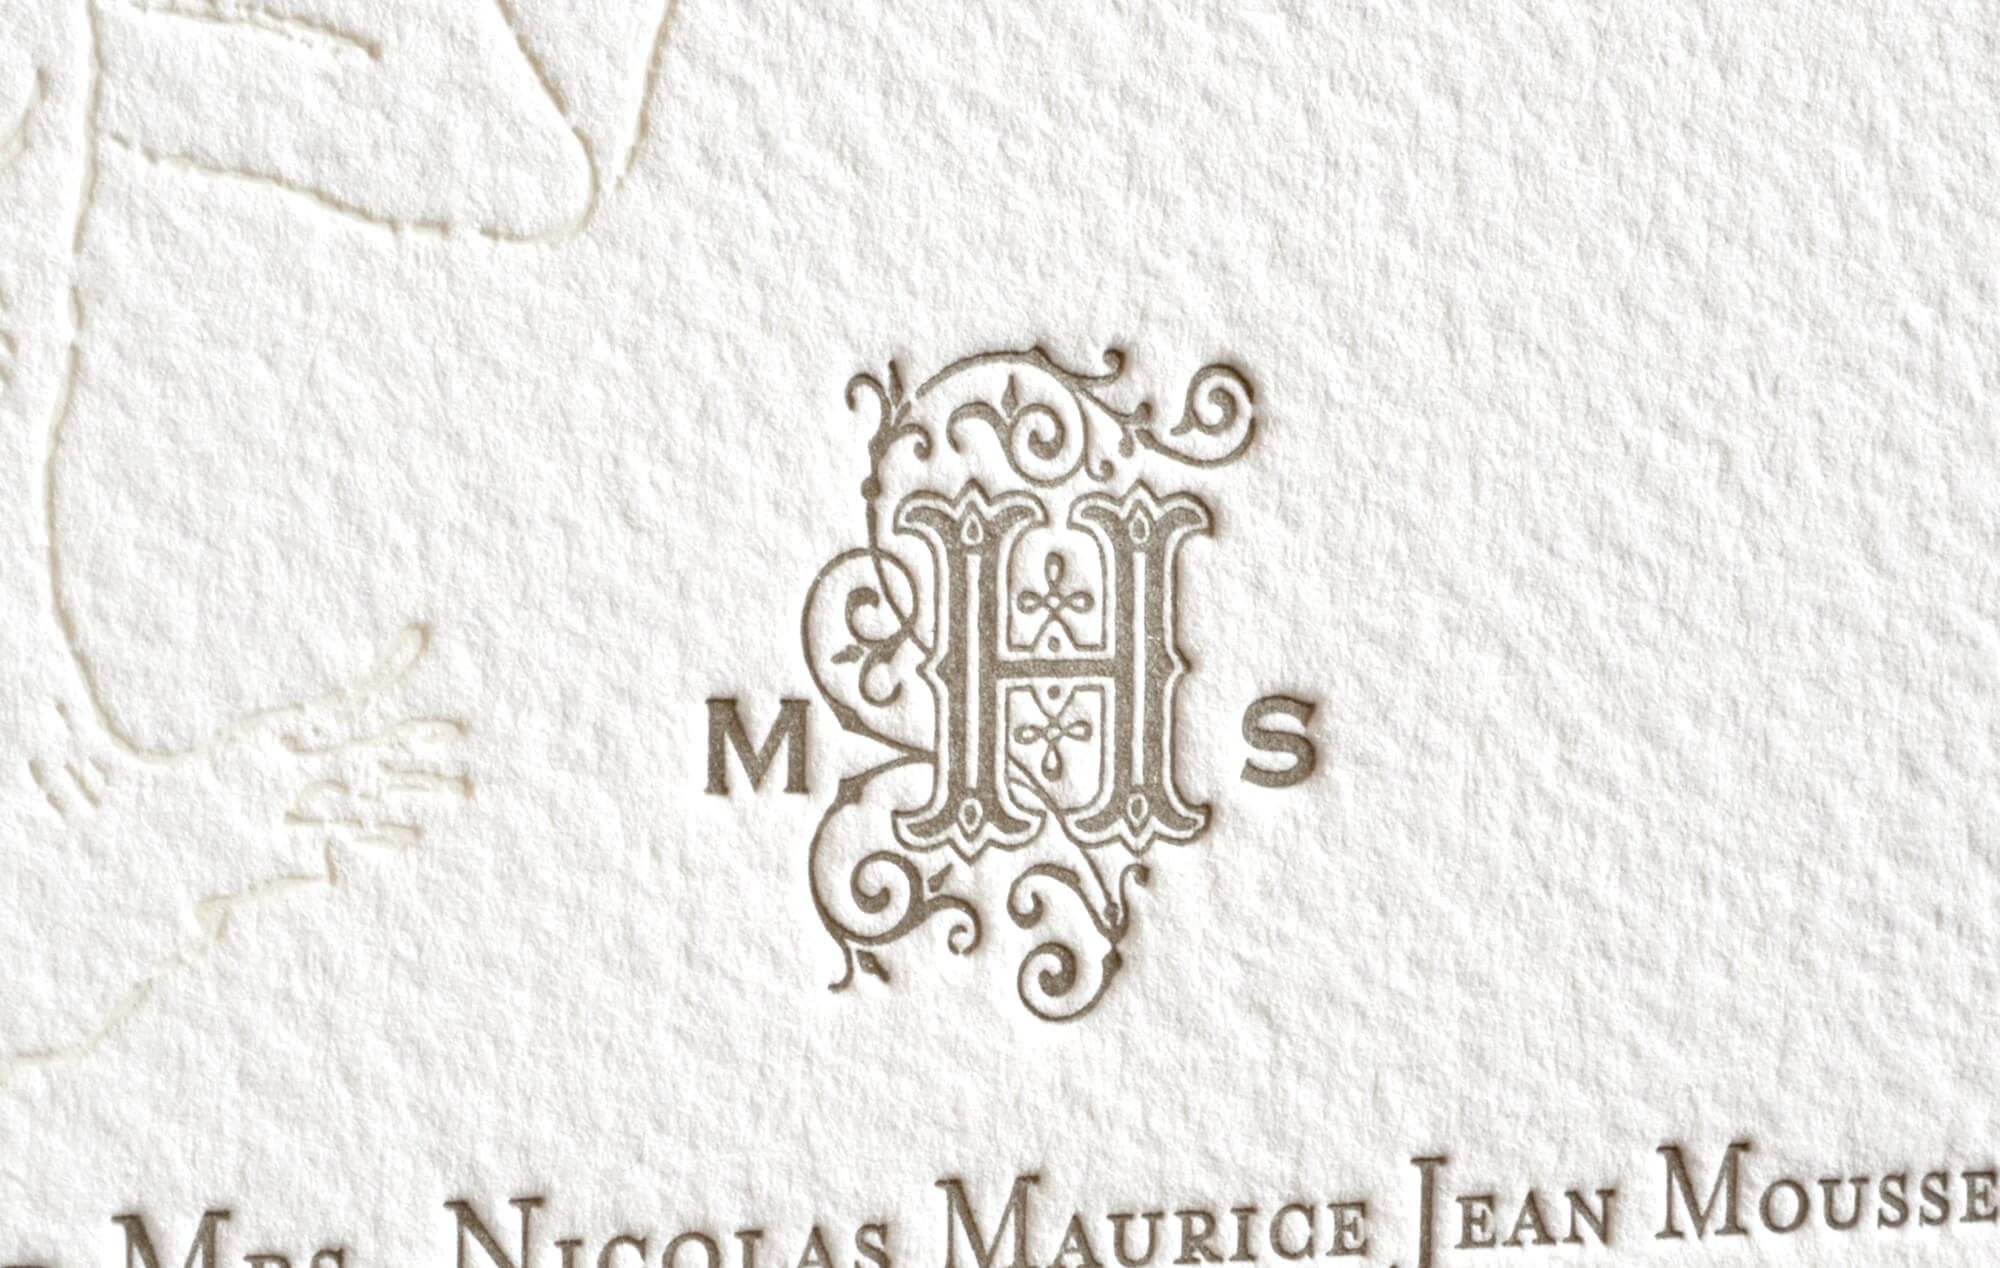 Letterpress vintage inspired monogram